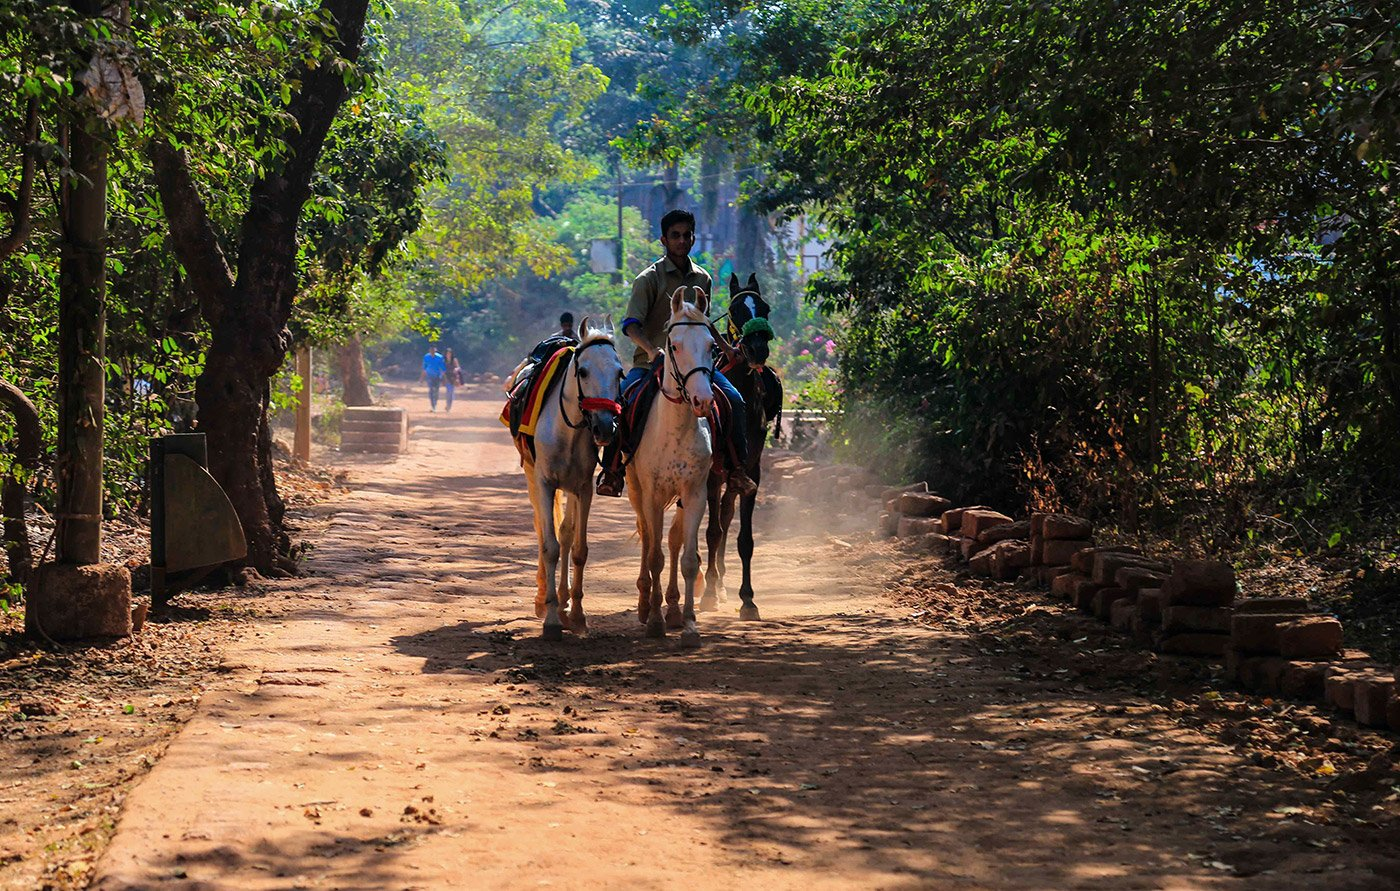 The keepers of the 460 horses of this hill station in Maharashtra's Raigad district walk or run upto 25 kilometres uphill every day through Matheran's dusty soil, with horse-borne tourists